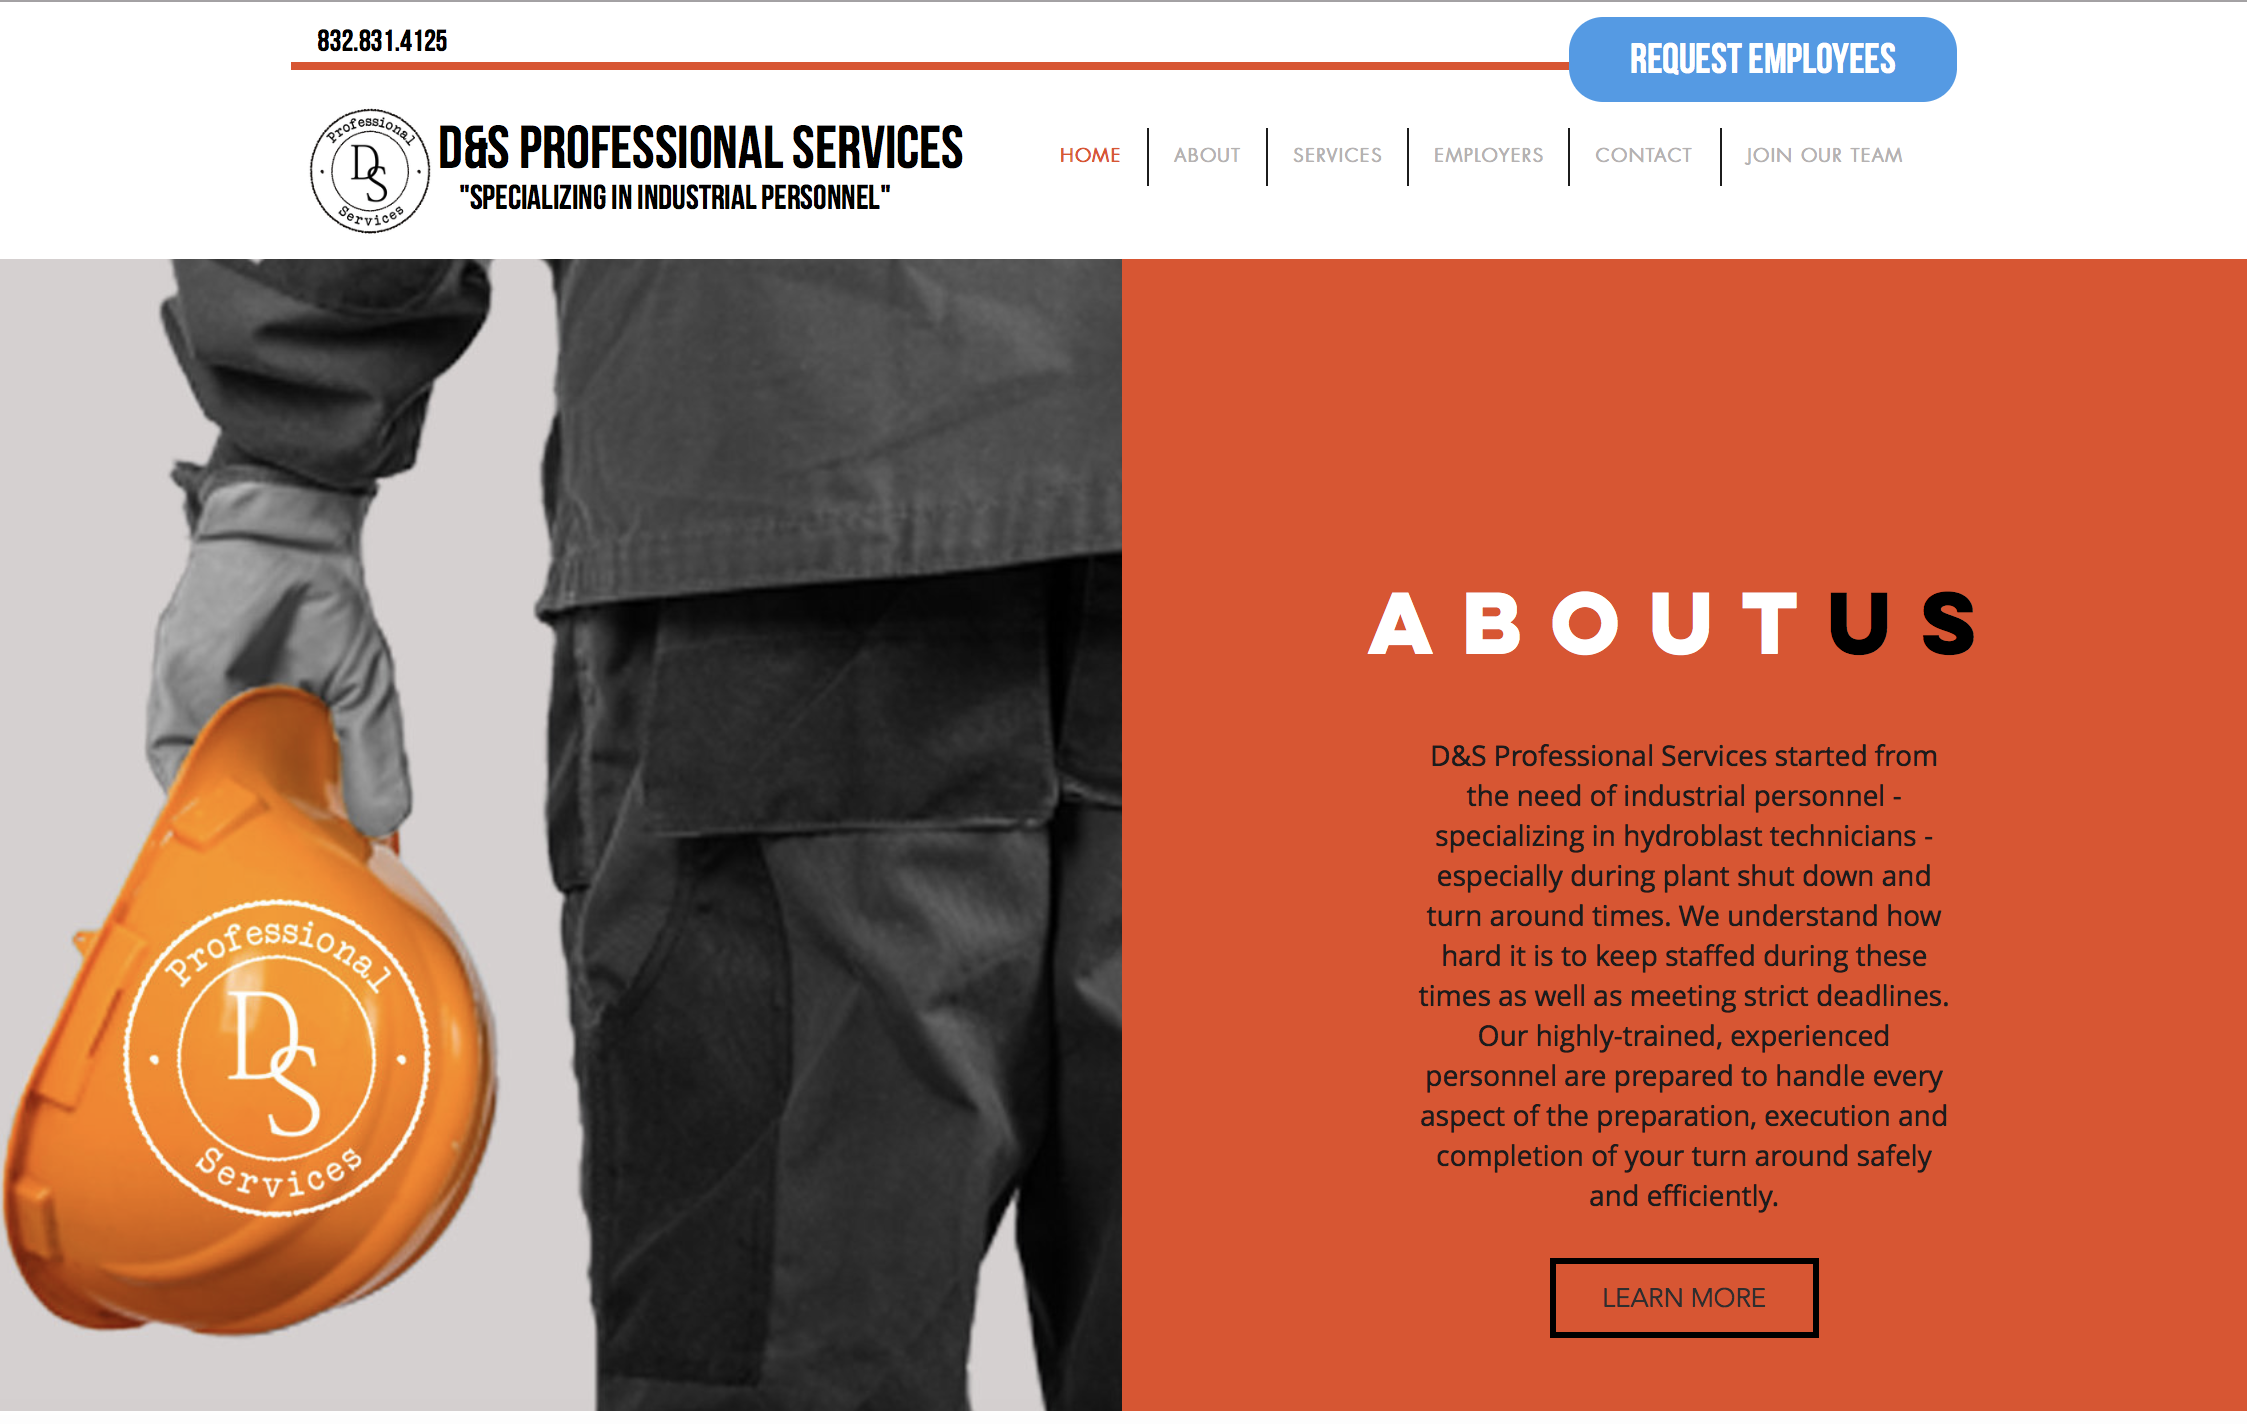 D&S Professional Services